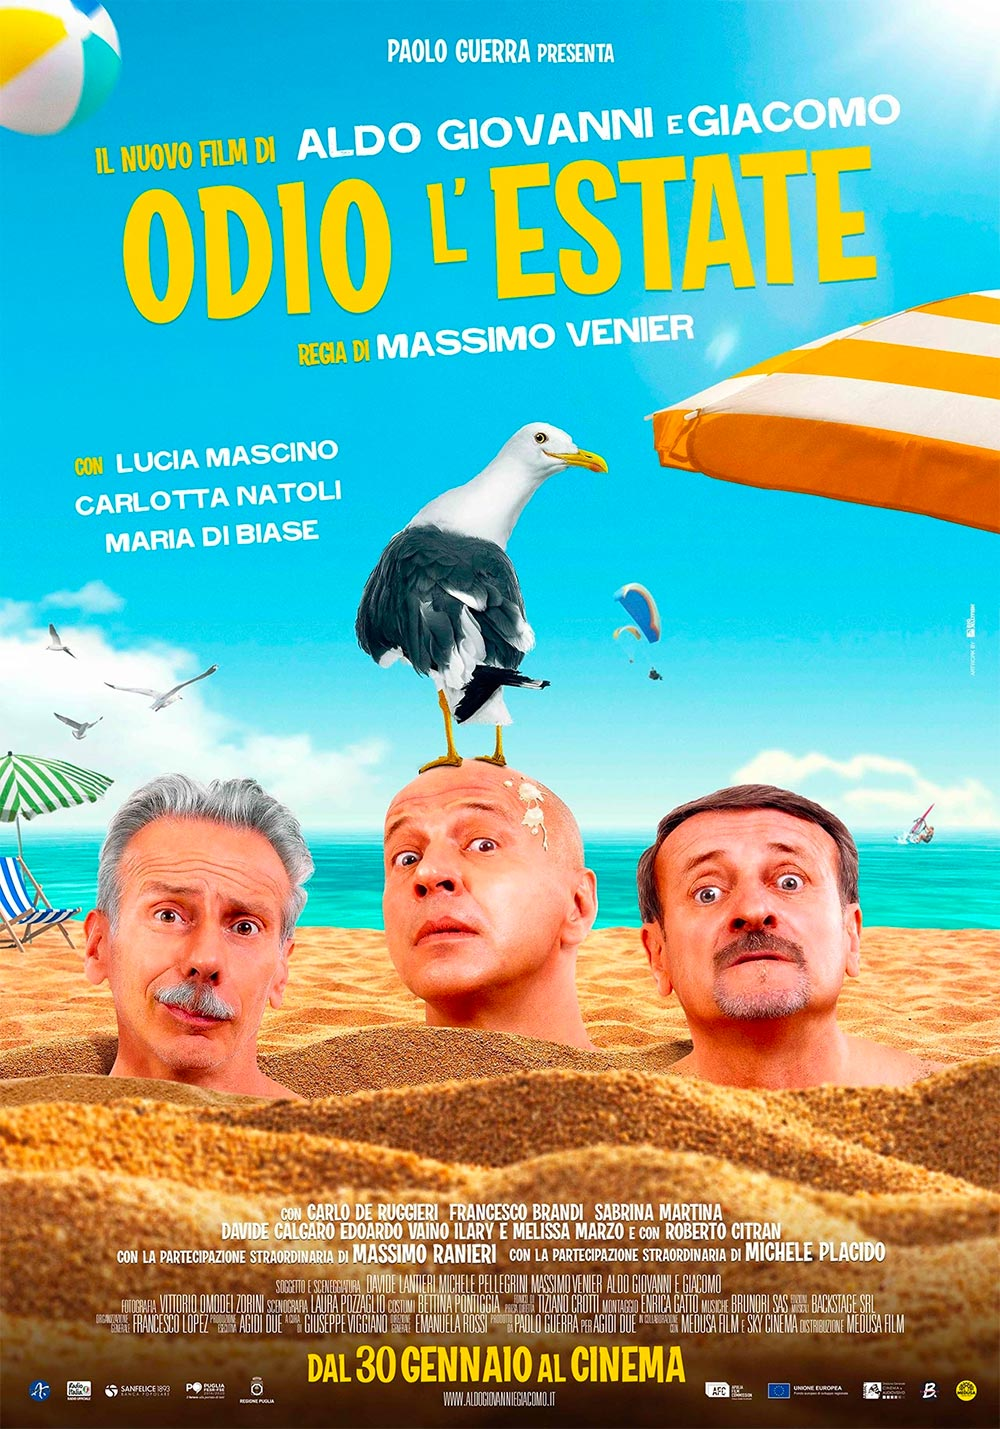 Odio l'estate - Film (2020) - MYmovies.it